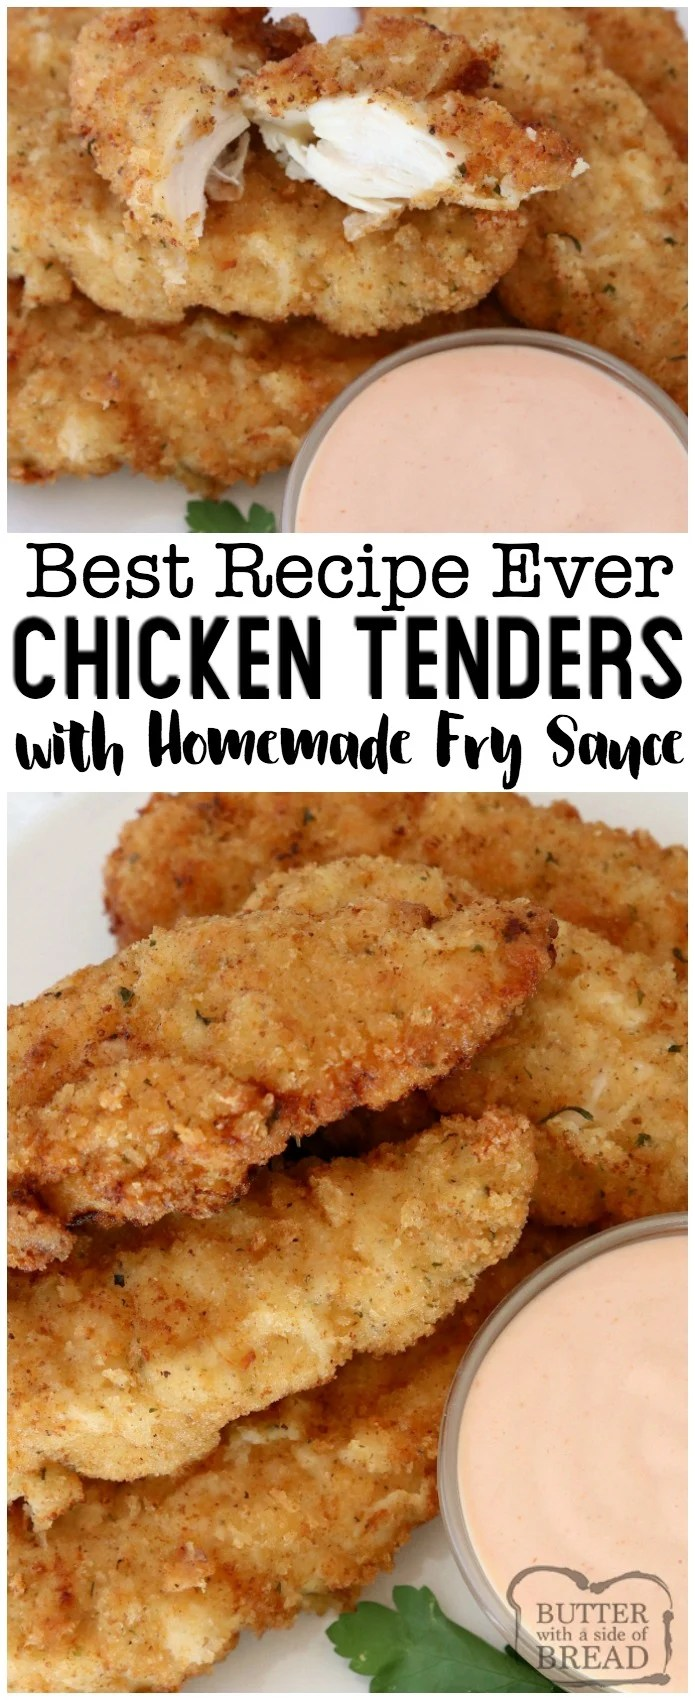 Chicken Strips made from scratch- so tender, juicy & flavorful. 2 simple tips to take your chicken tenders from good to great! #chicken #dinner #tenders #friedchicken #tenderize #food #meal #maindish #cooking #recipe from BUTTER WITH A SIDE OF BREAD